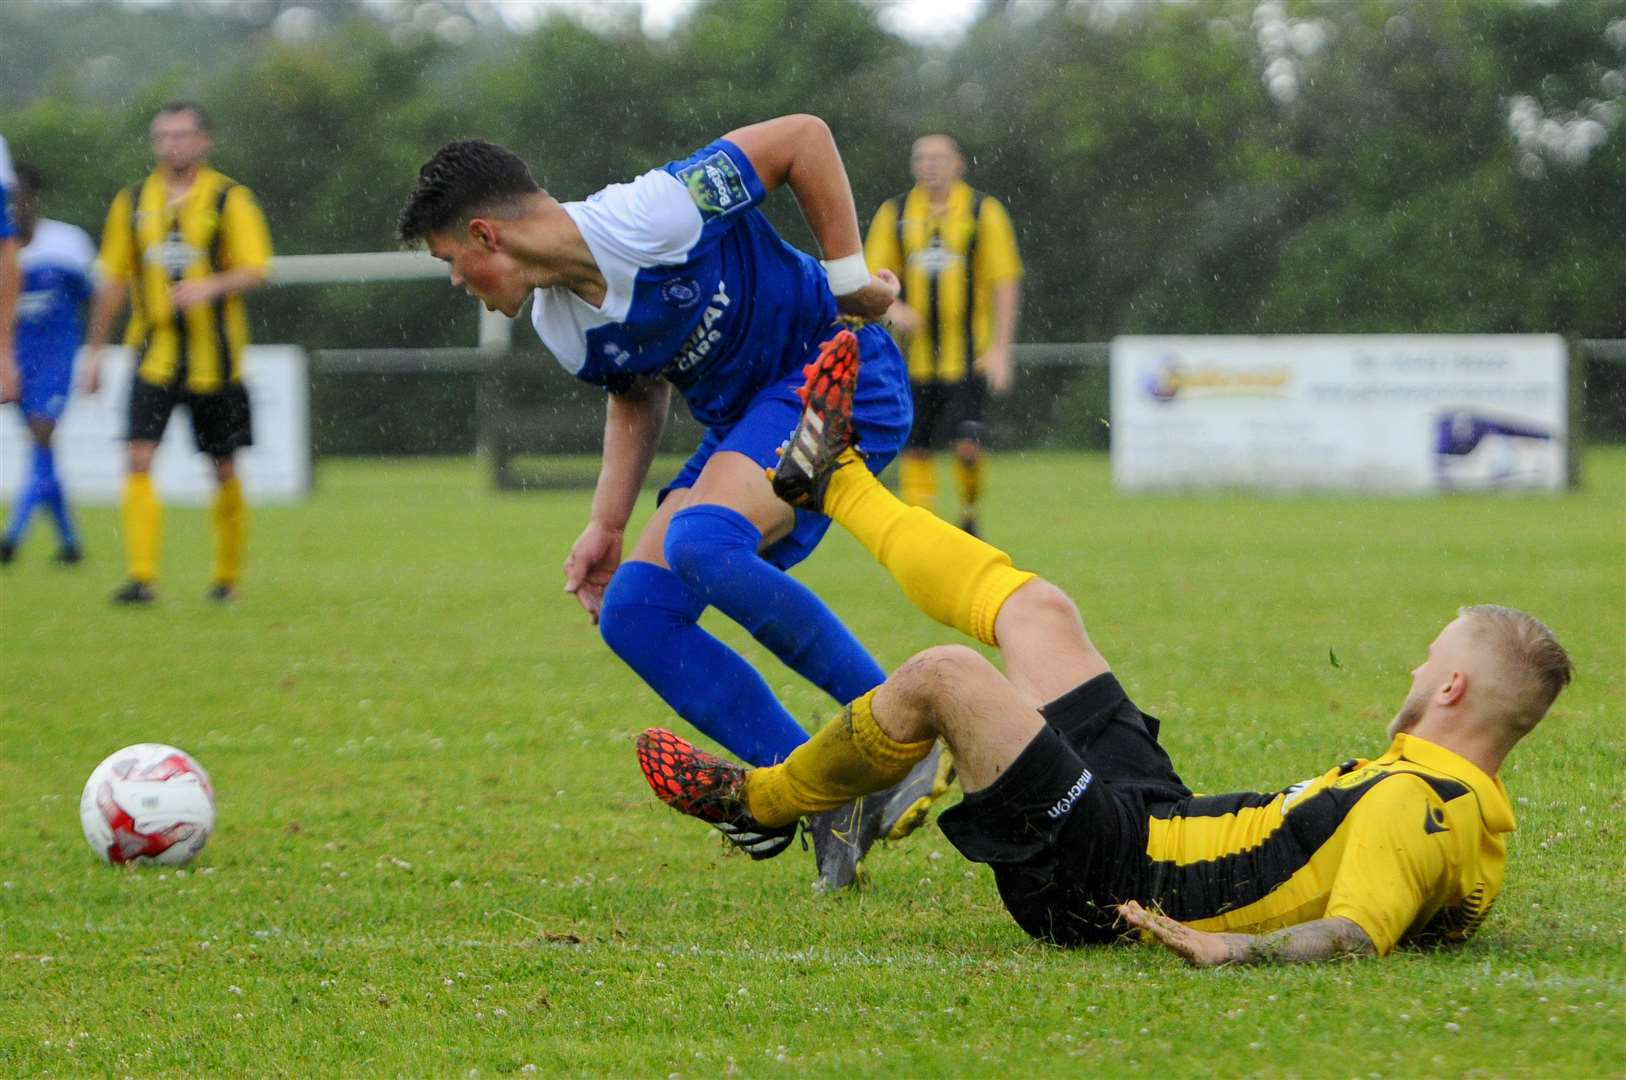 Ross Crane in action for Bury Town at Debenham LC on SaturdayPicture: Mark Bullimore